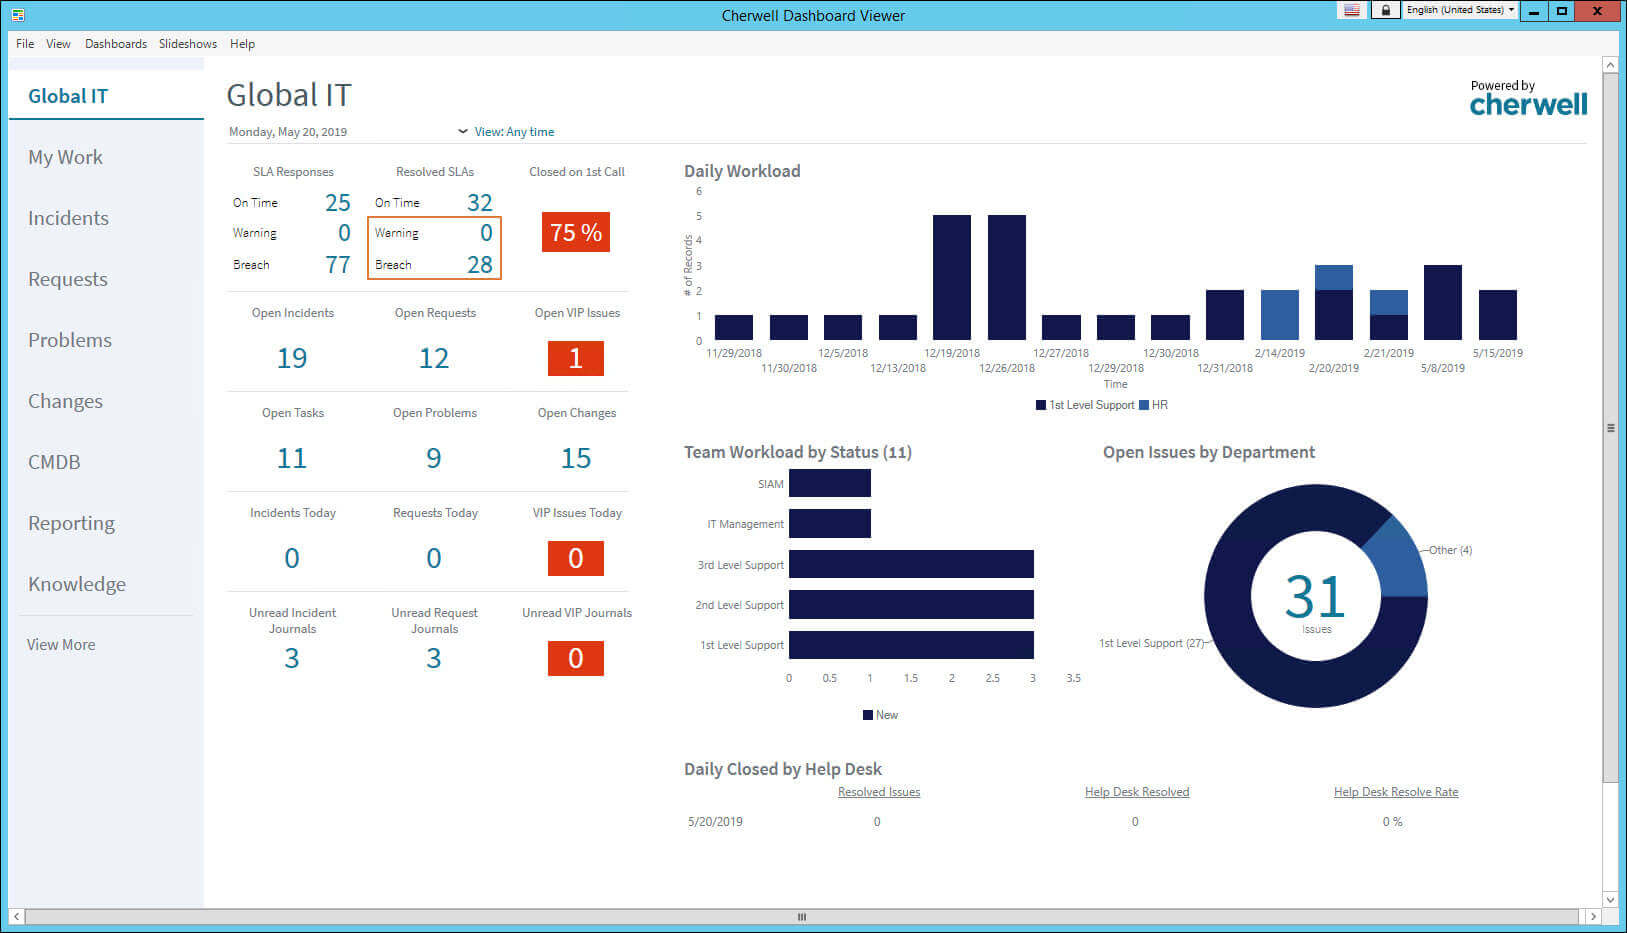 cherwell dashboard screenshot